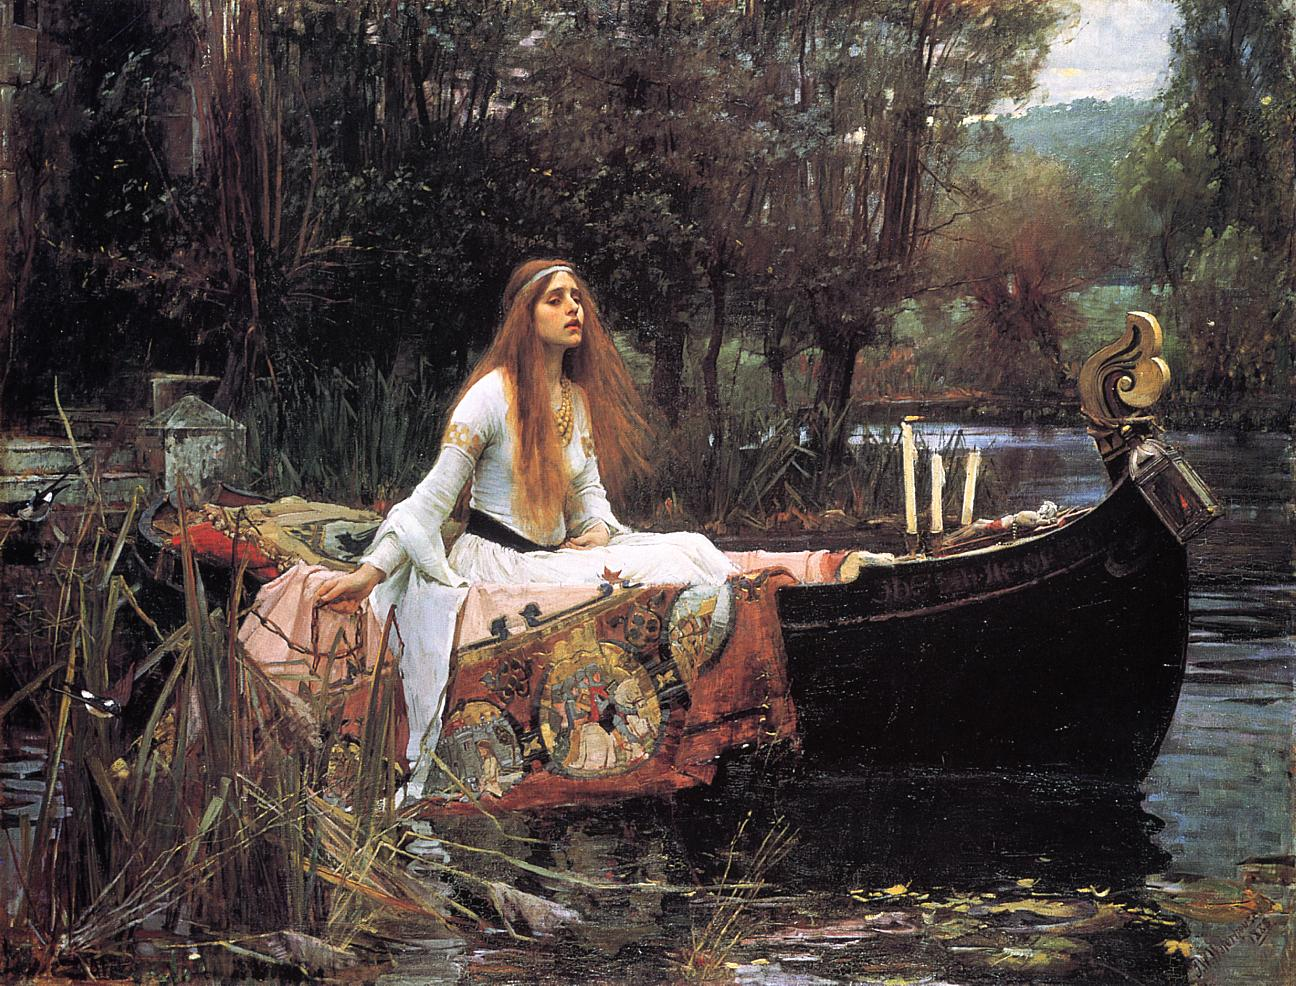 The Lady of Shalott, by John William Waterhouse